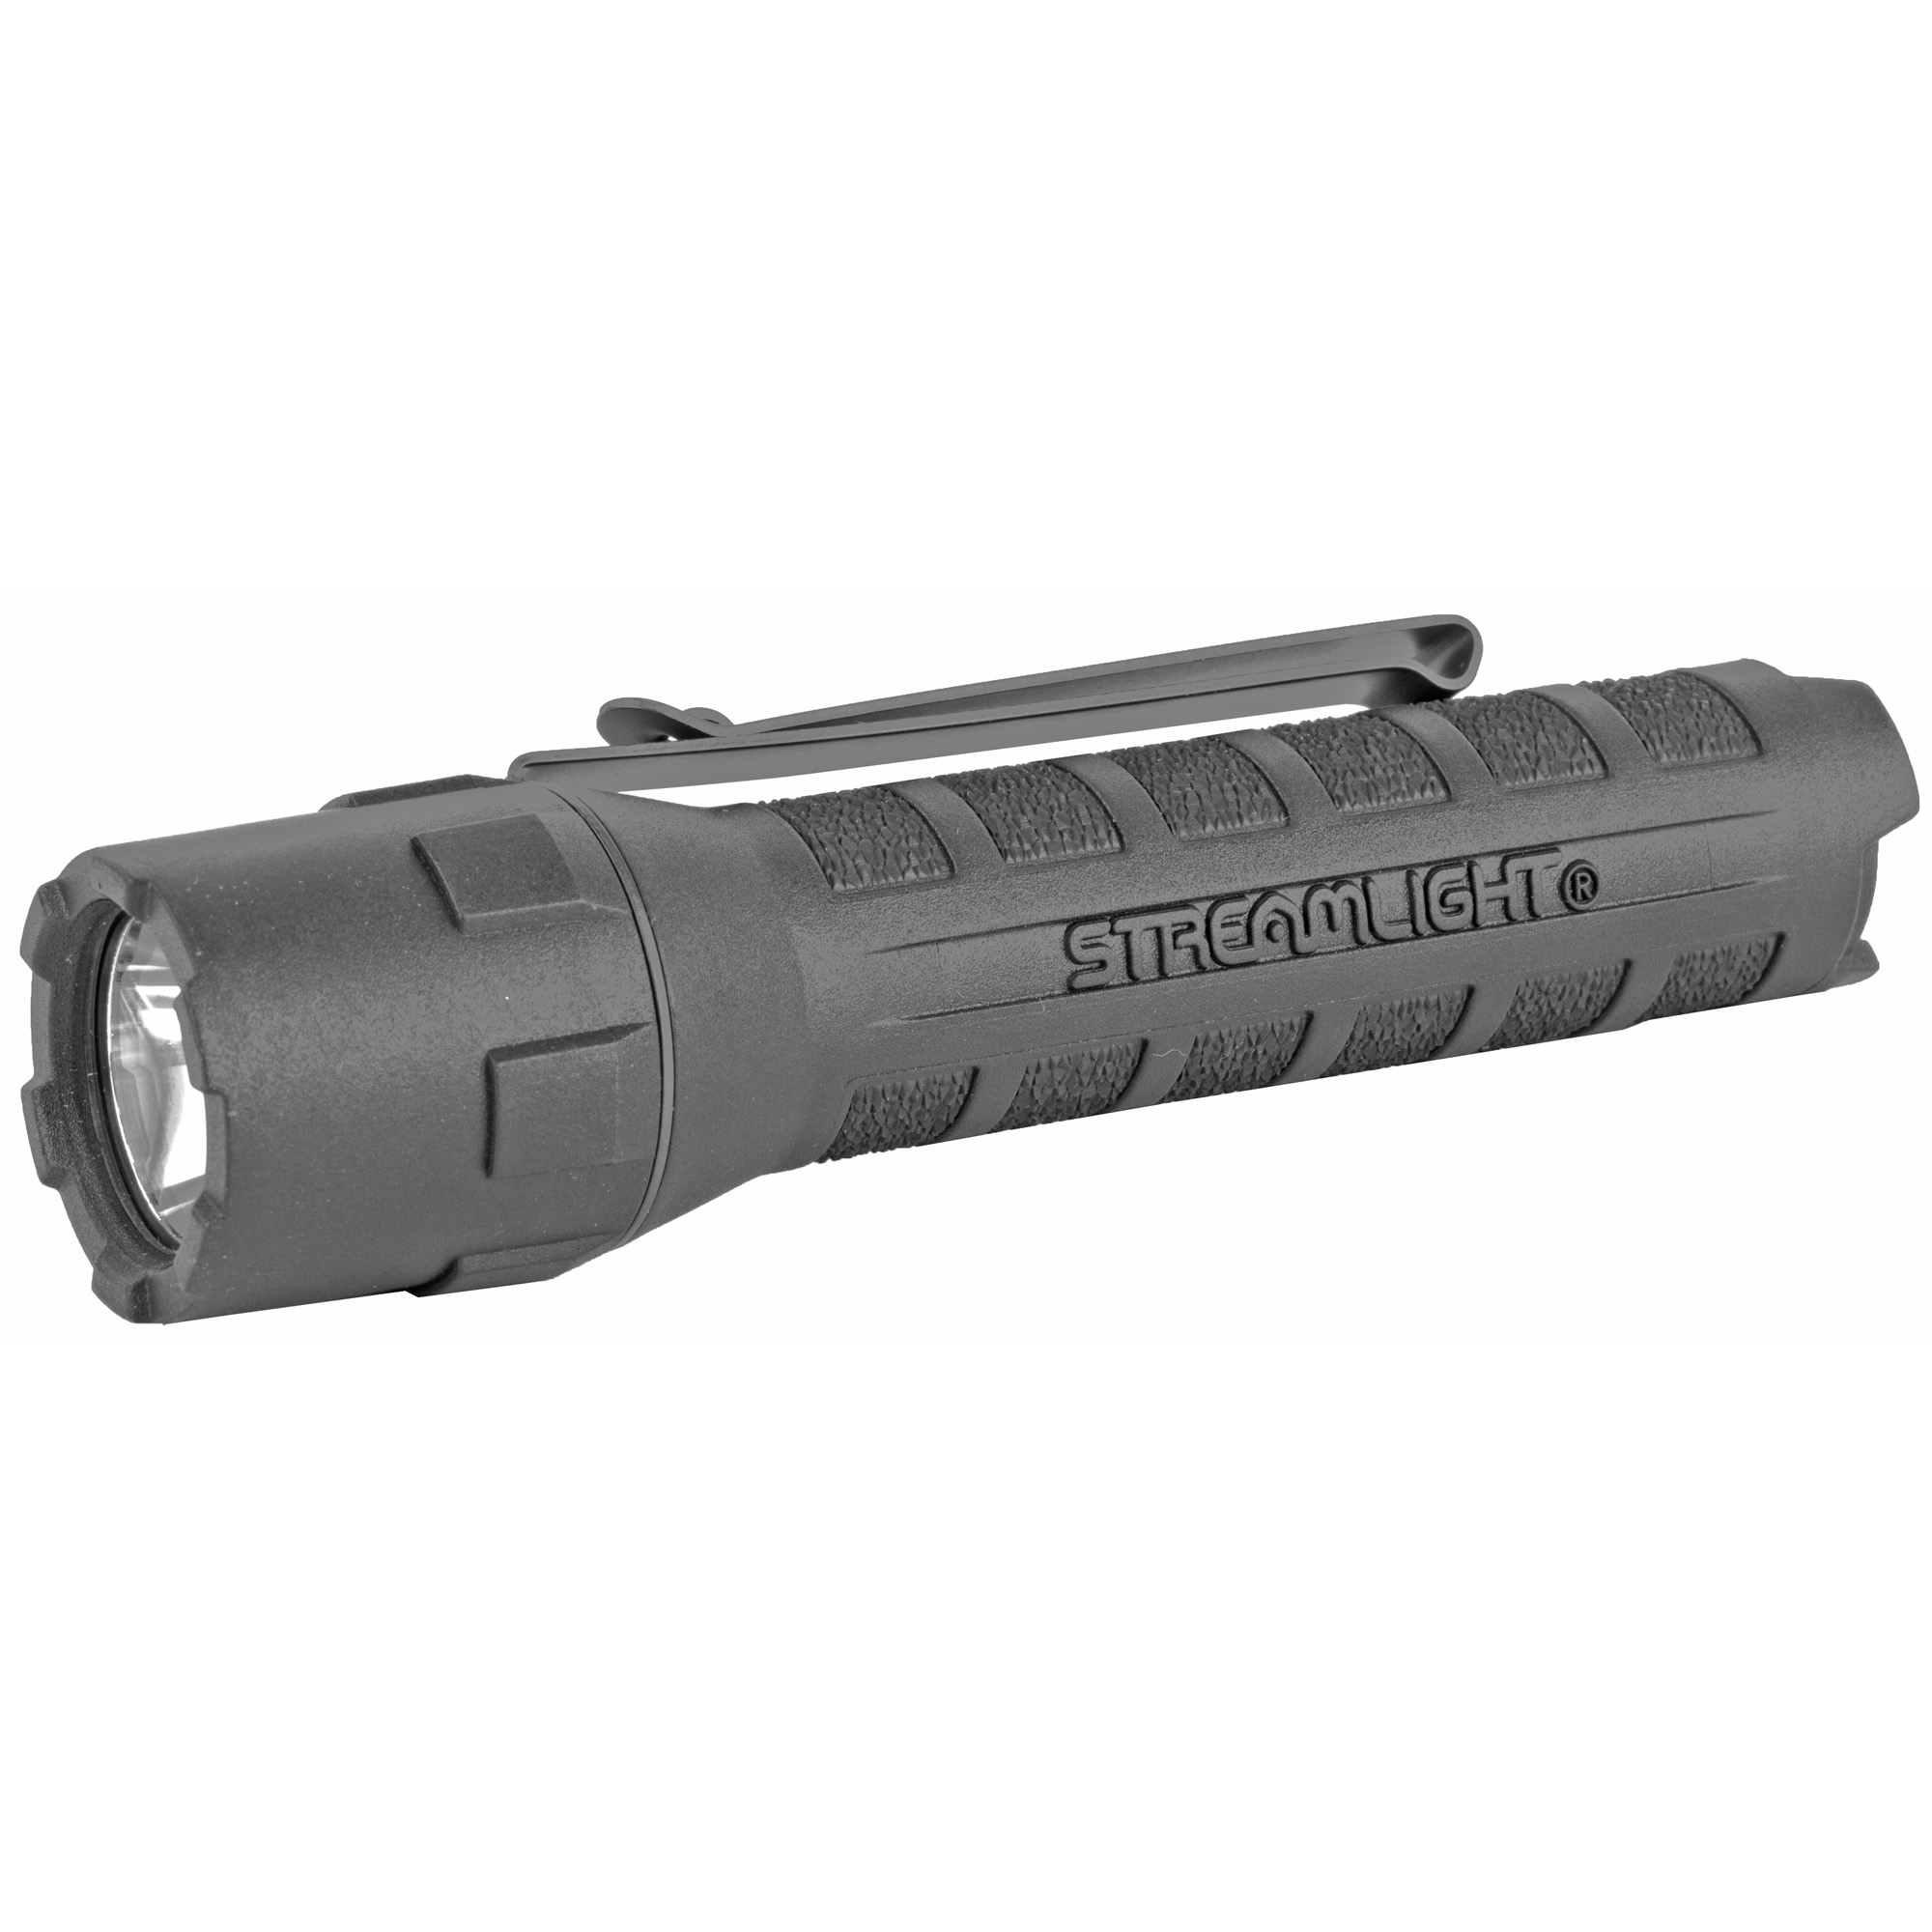 The PolyTac X USB is a complete rechargeable system that includes Streamlight's new 18650 USB battery with an integrated USB charge port.